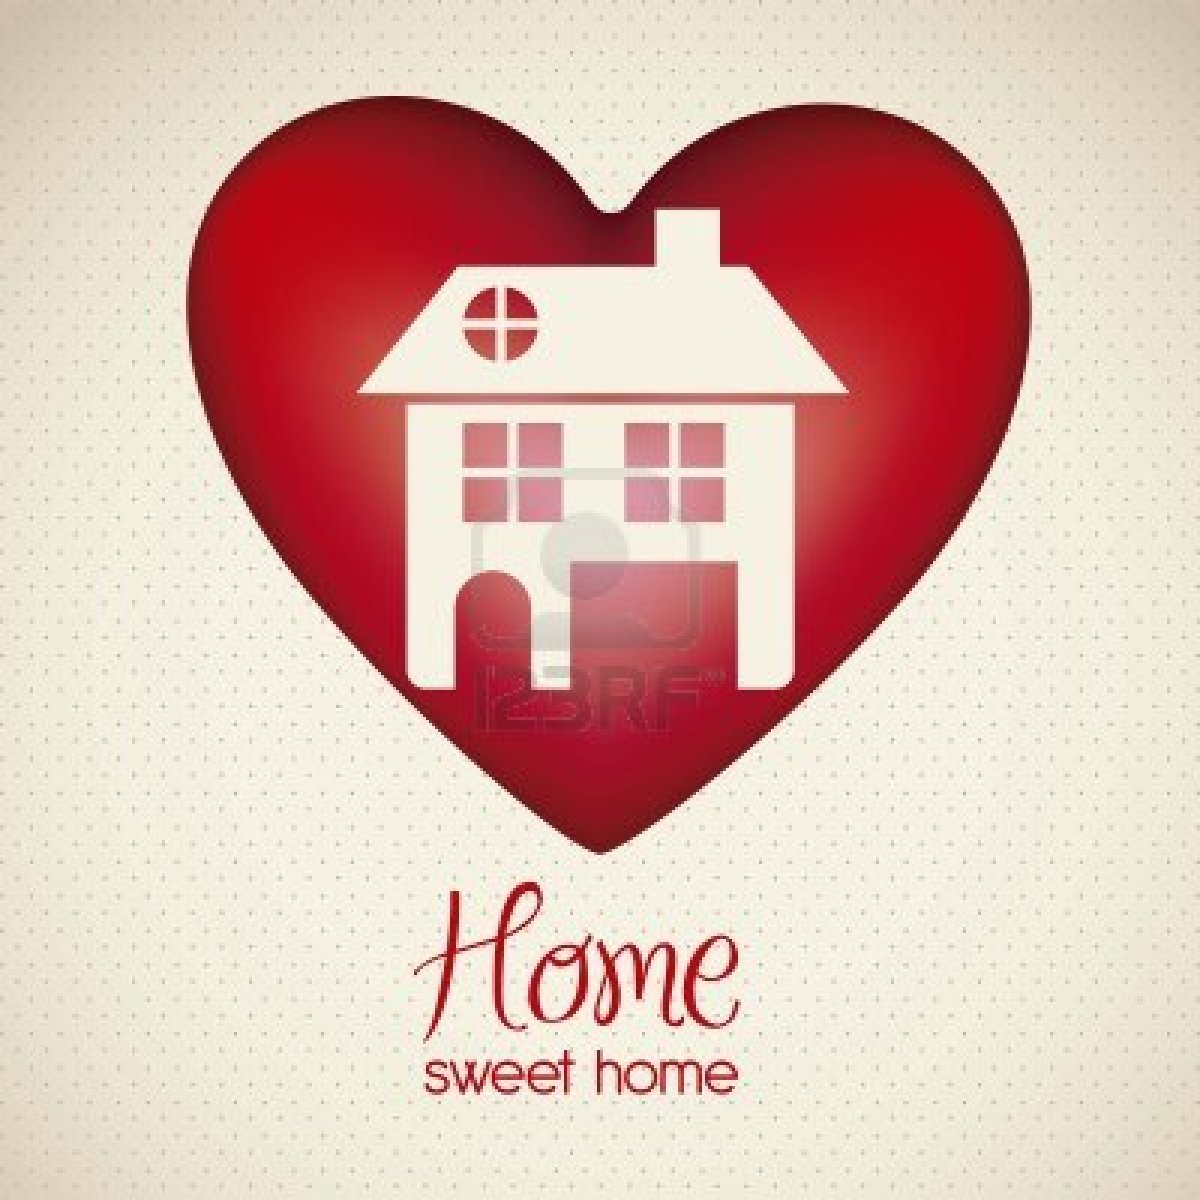 15794655-illustration-of-home-icon-on-heart-house-silhouettes-on-white-background-vector-illustration